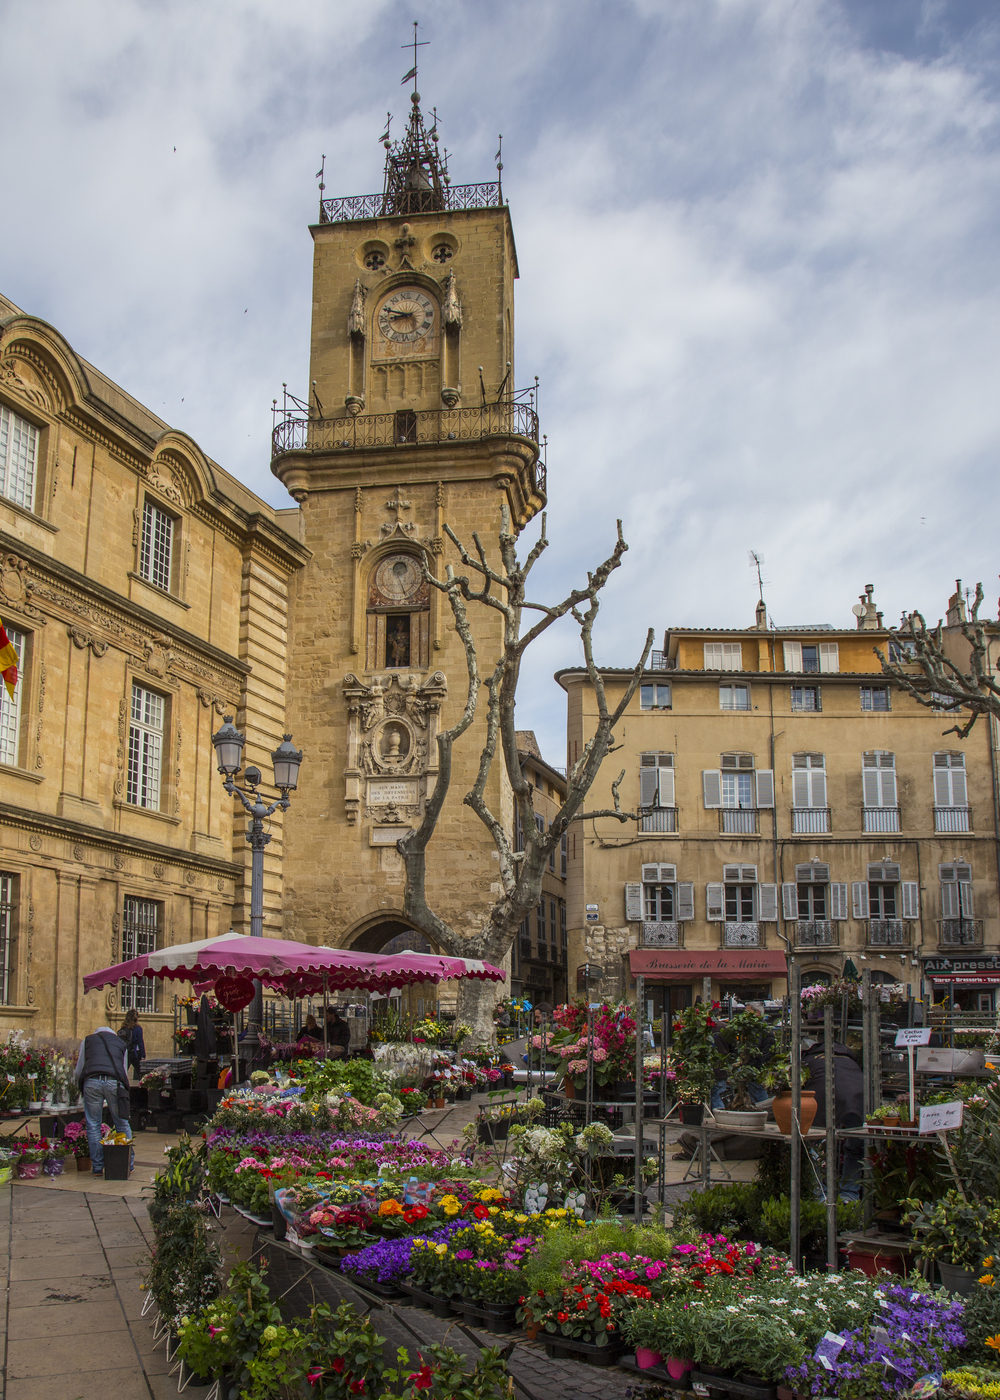 The Aix City Hall, and a flower market on a Saturday morning.